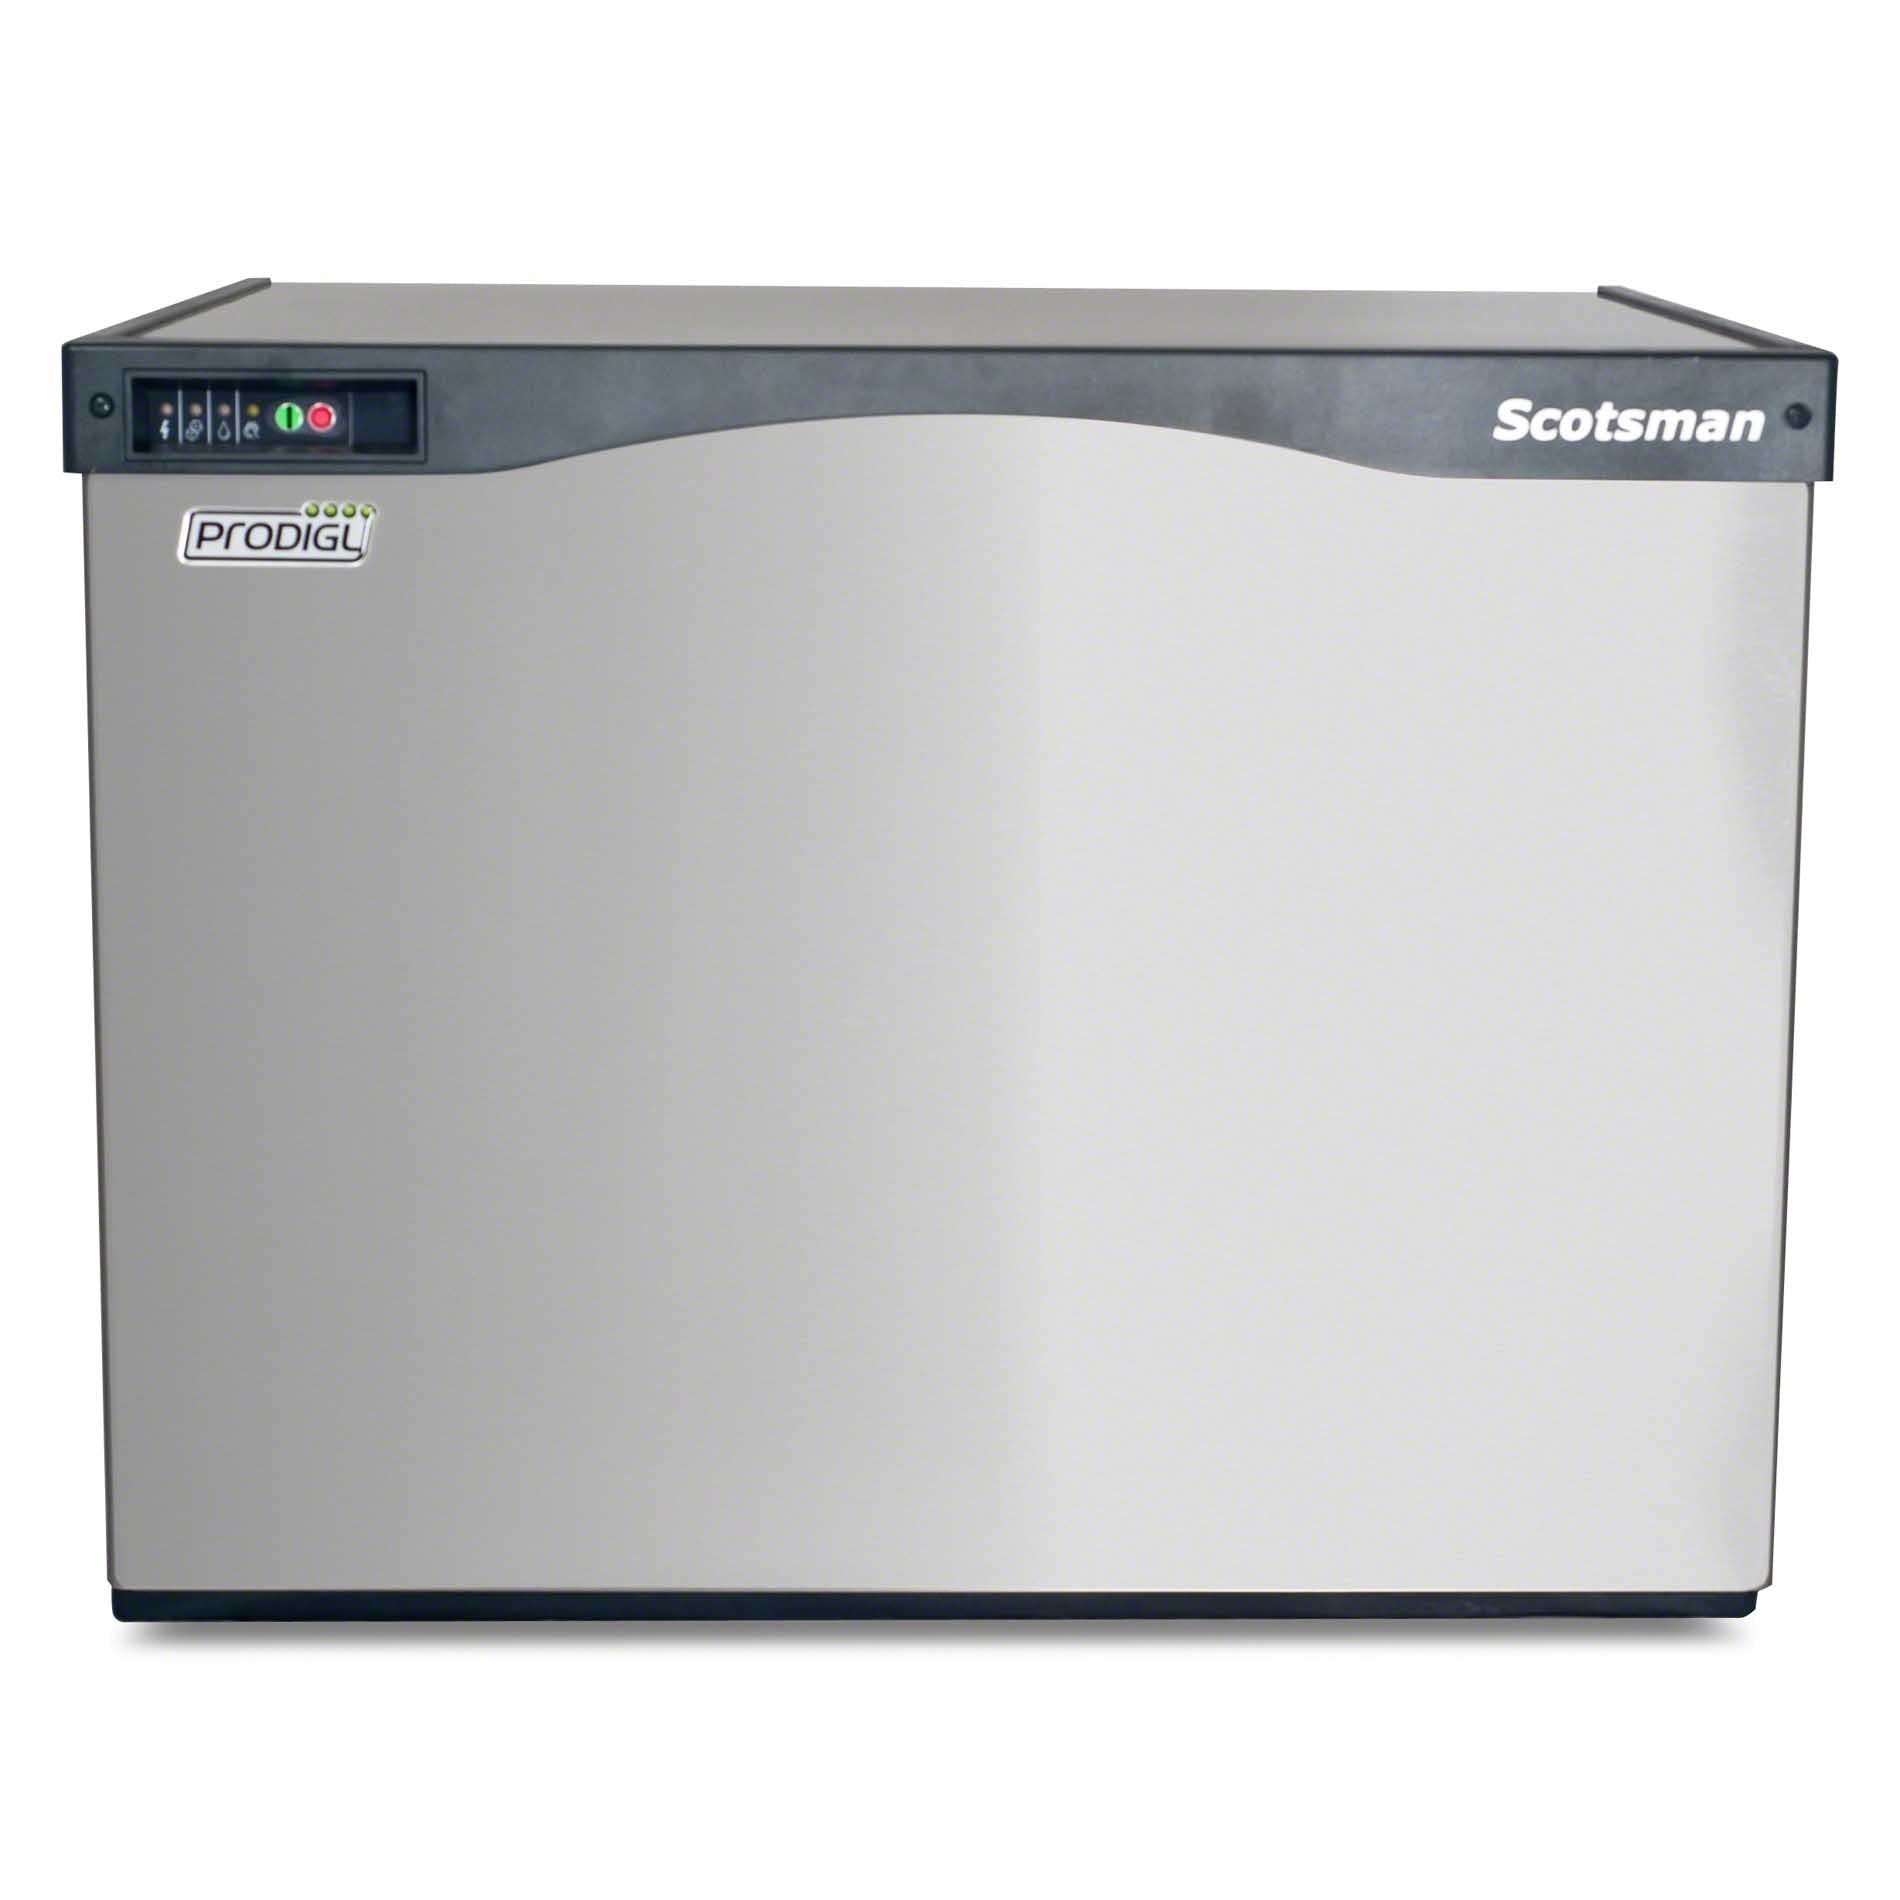 Scotsman - C0330MA-32A 381 lb Full Size Cube Ice Machine - Prodigy Series Ice machine sold by Food Service Warehouse